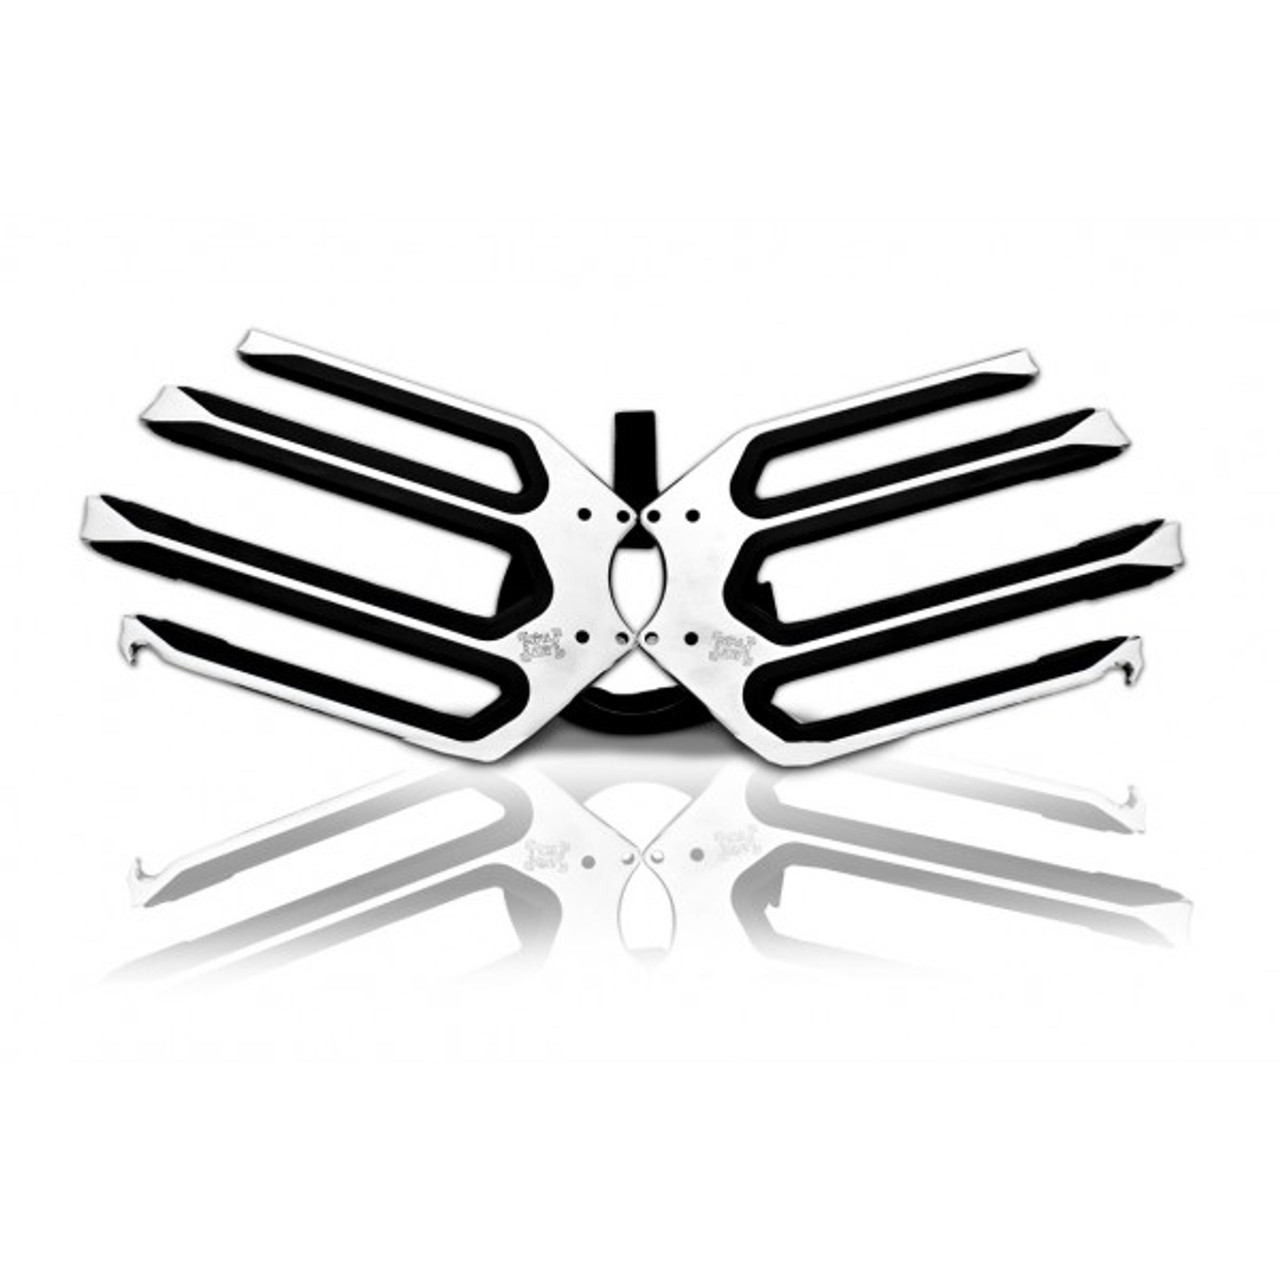 Malibu G3 Amp Axis Replacement Forks Triple Board Rack